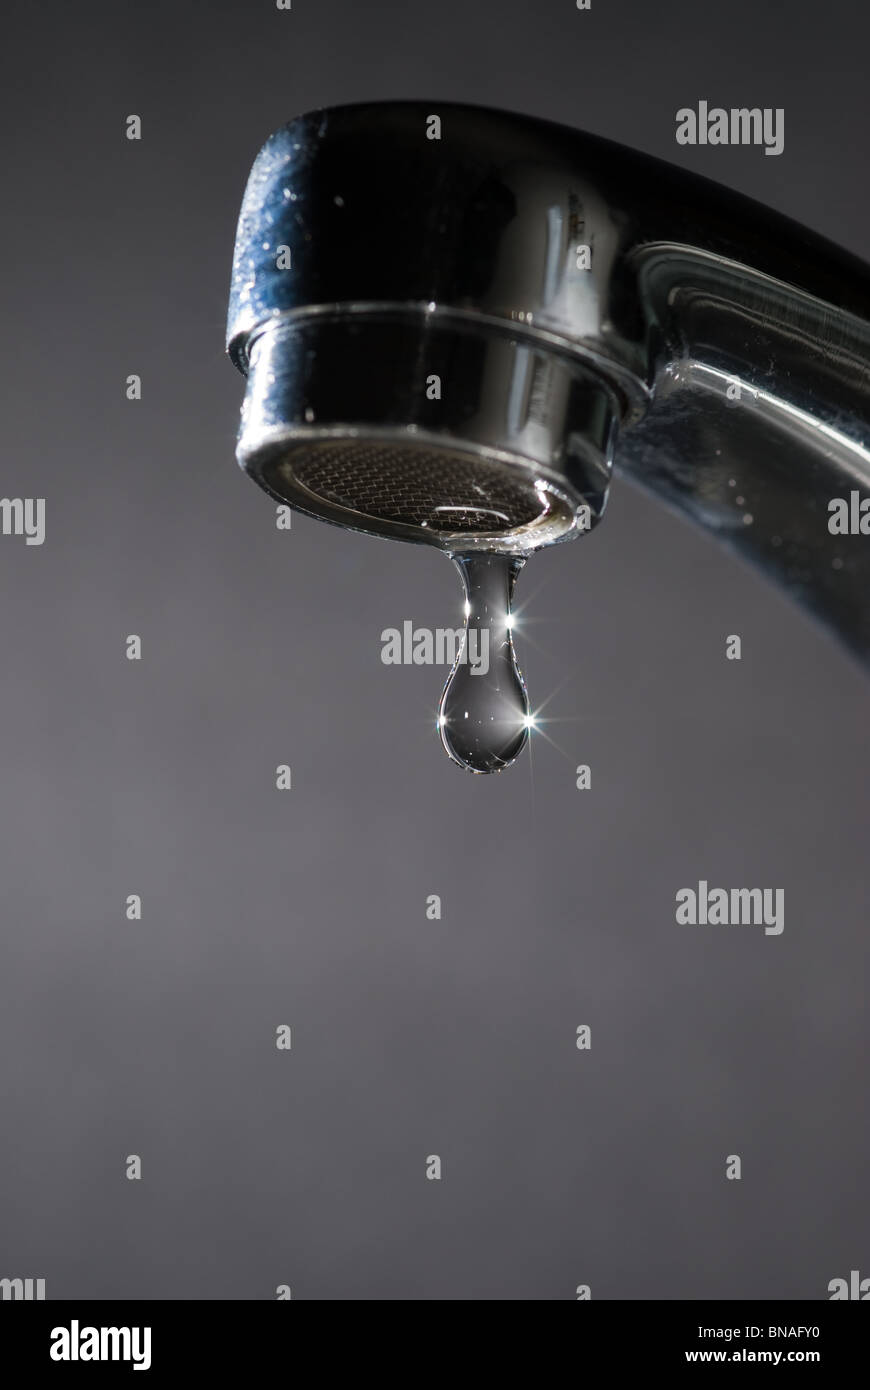 Dripping tap Stock Photo, Royalty Free Image: 30350180 - Alamy